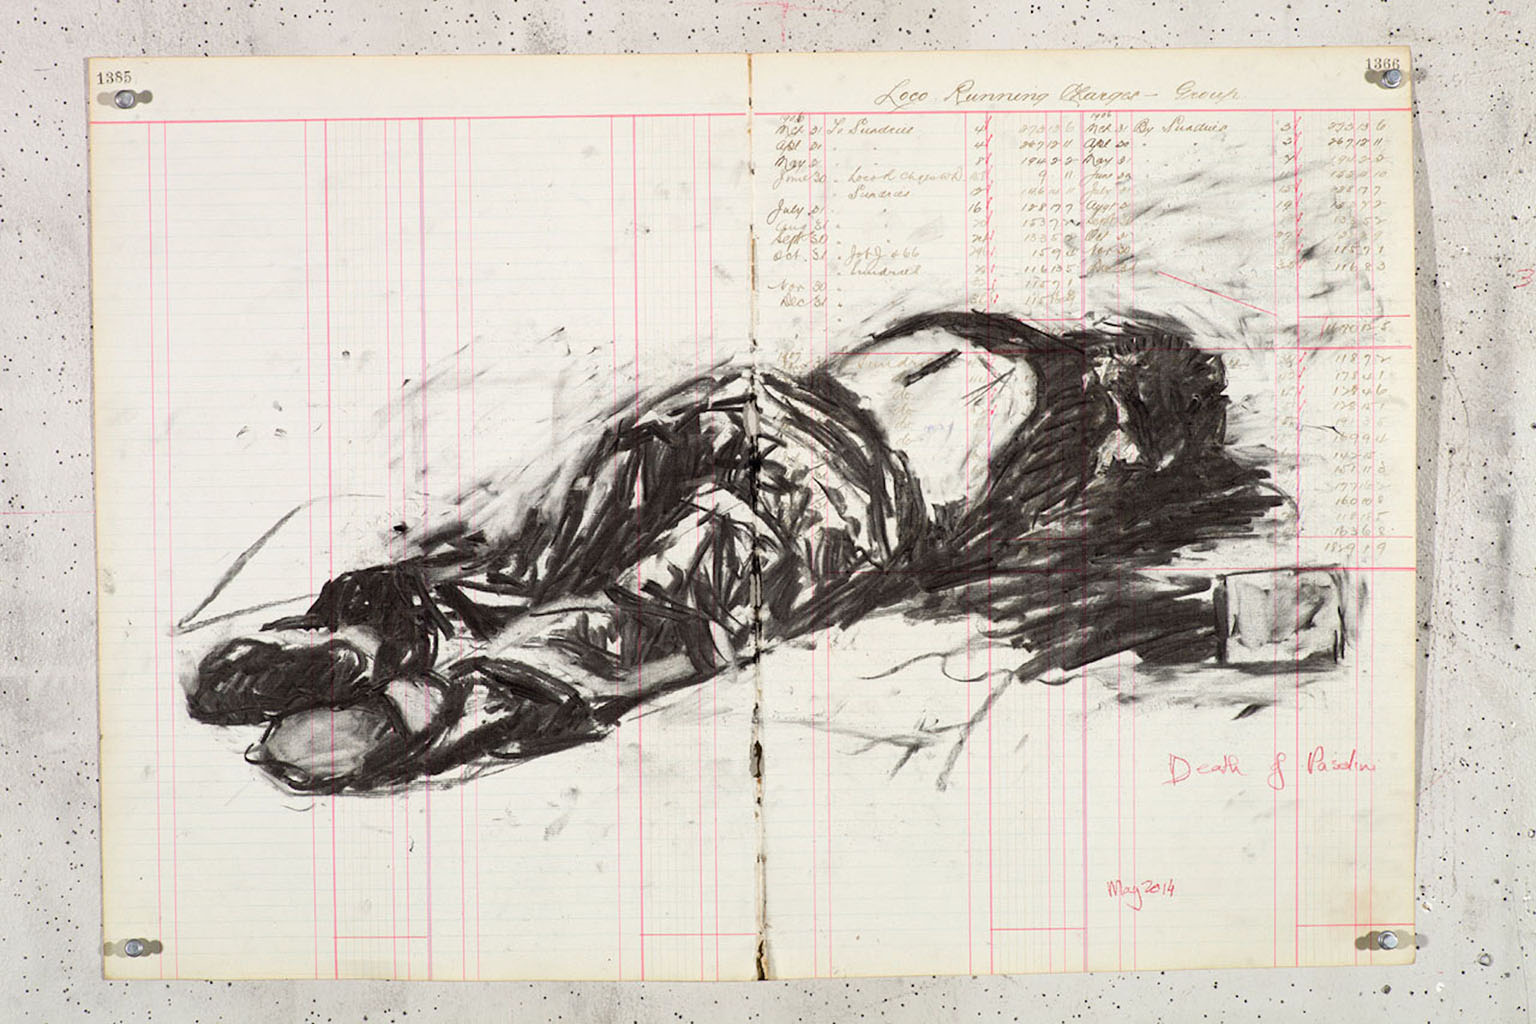 William Kentridge, The death of Pier Paolo Pasolini, Courtesy Galleria Lia Rumma Milano - Napoli